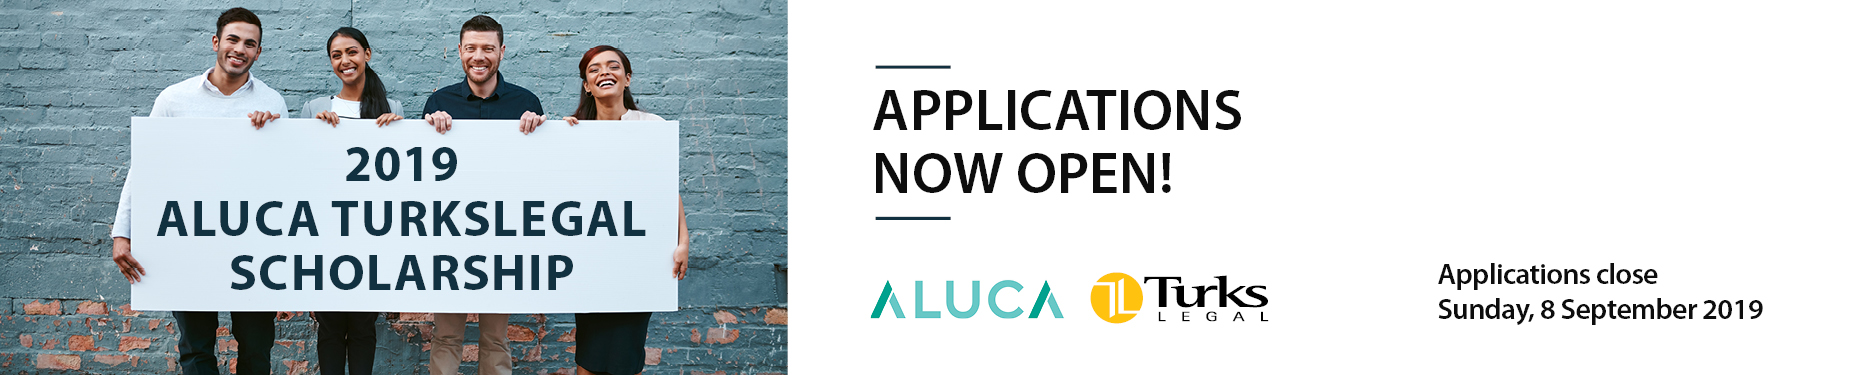 2019 ALUCA TurksLegal Scholarship